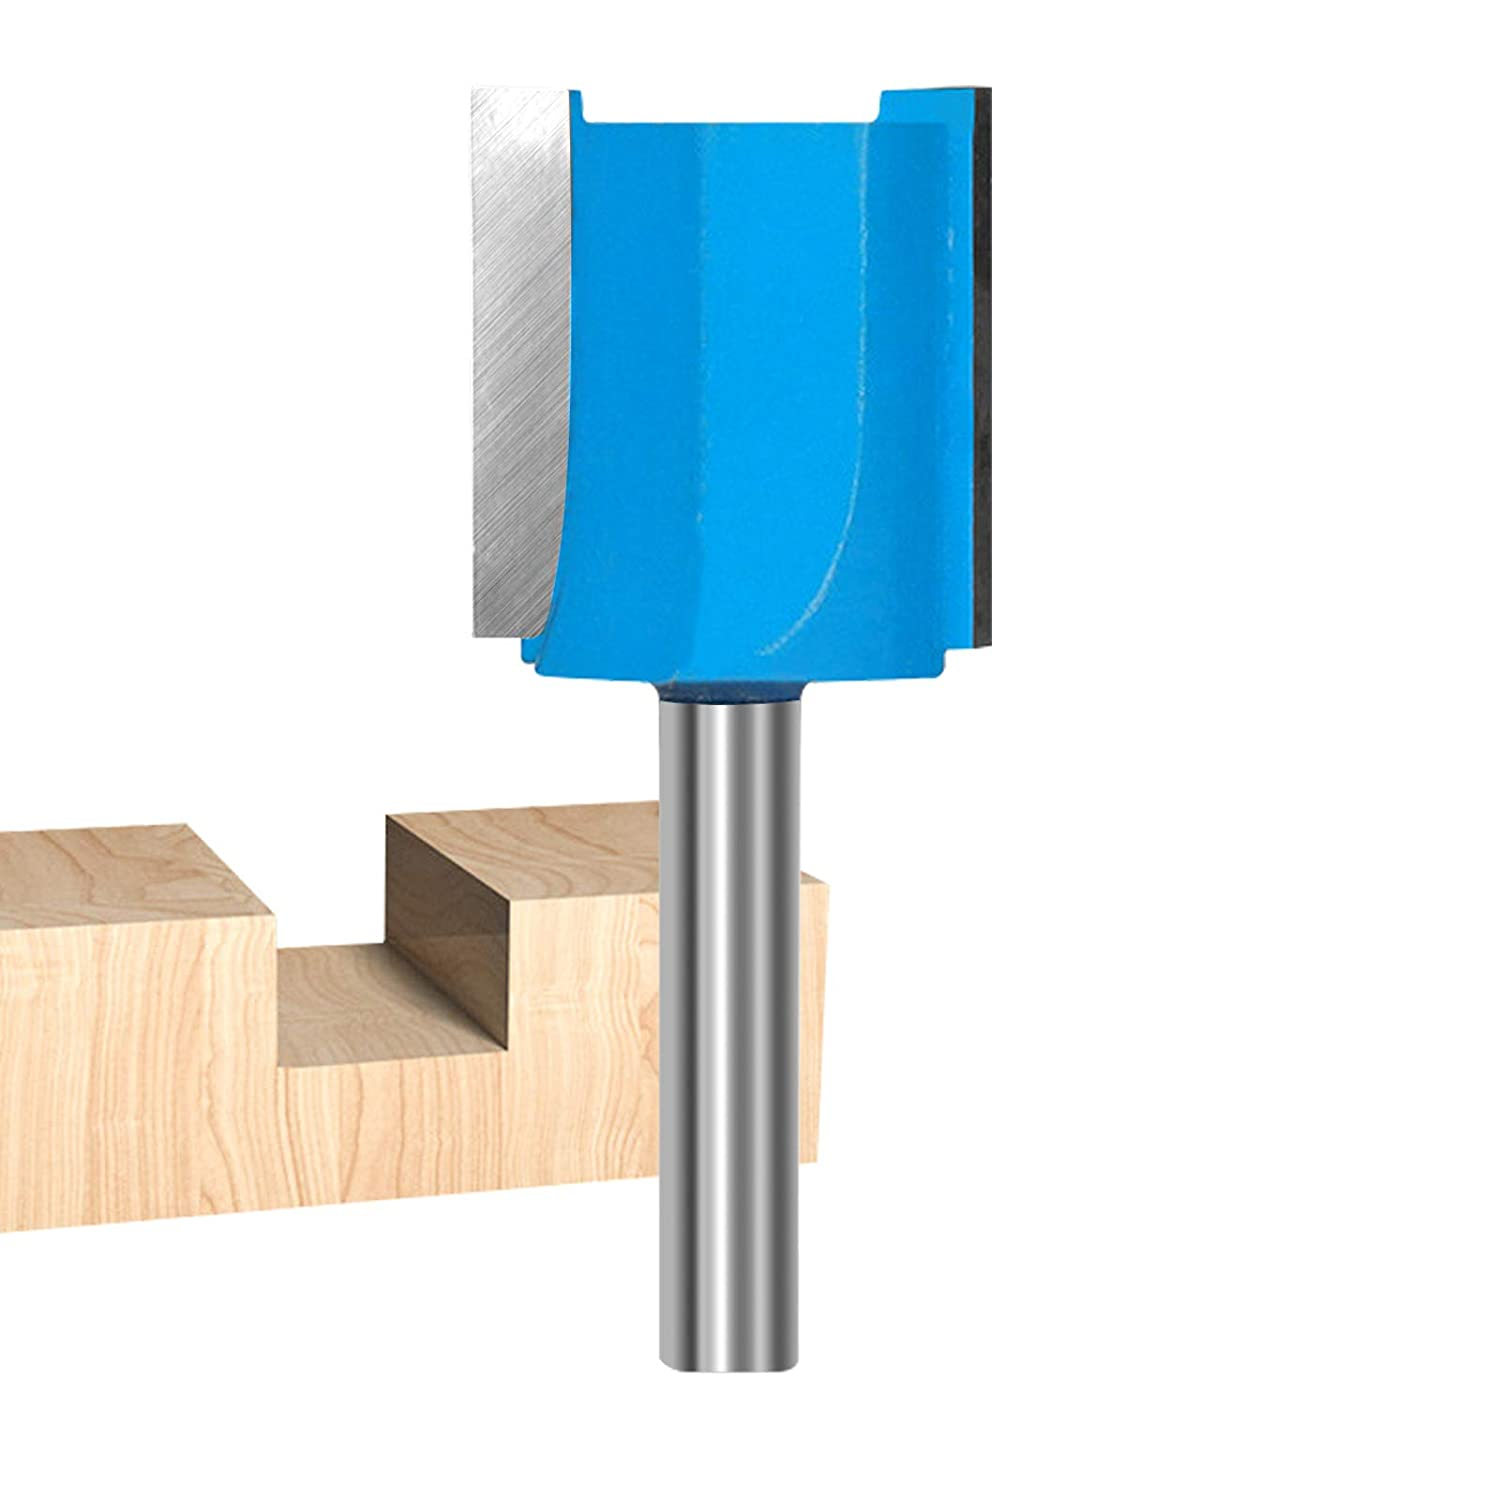 ROOCBIT Straight Cut Router Bits 5 ☆ very popular Free shipping anywhere in the nation 1 Str Double Shank 4-Inch Flute